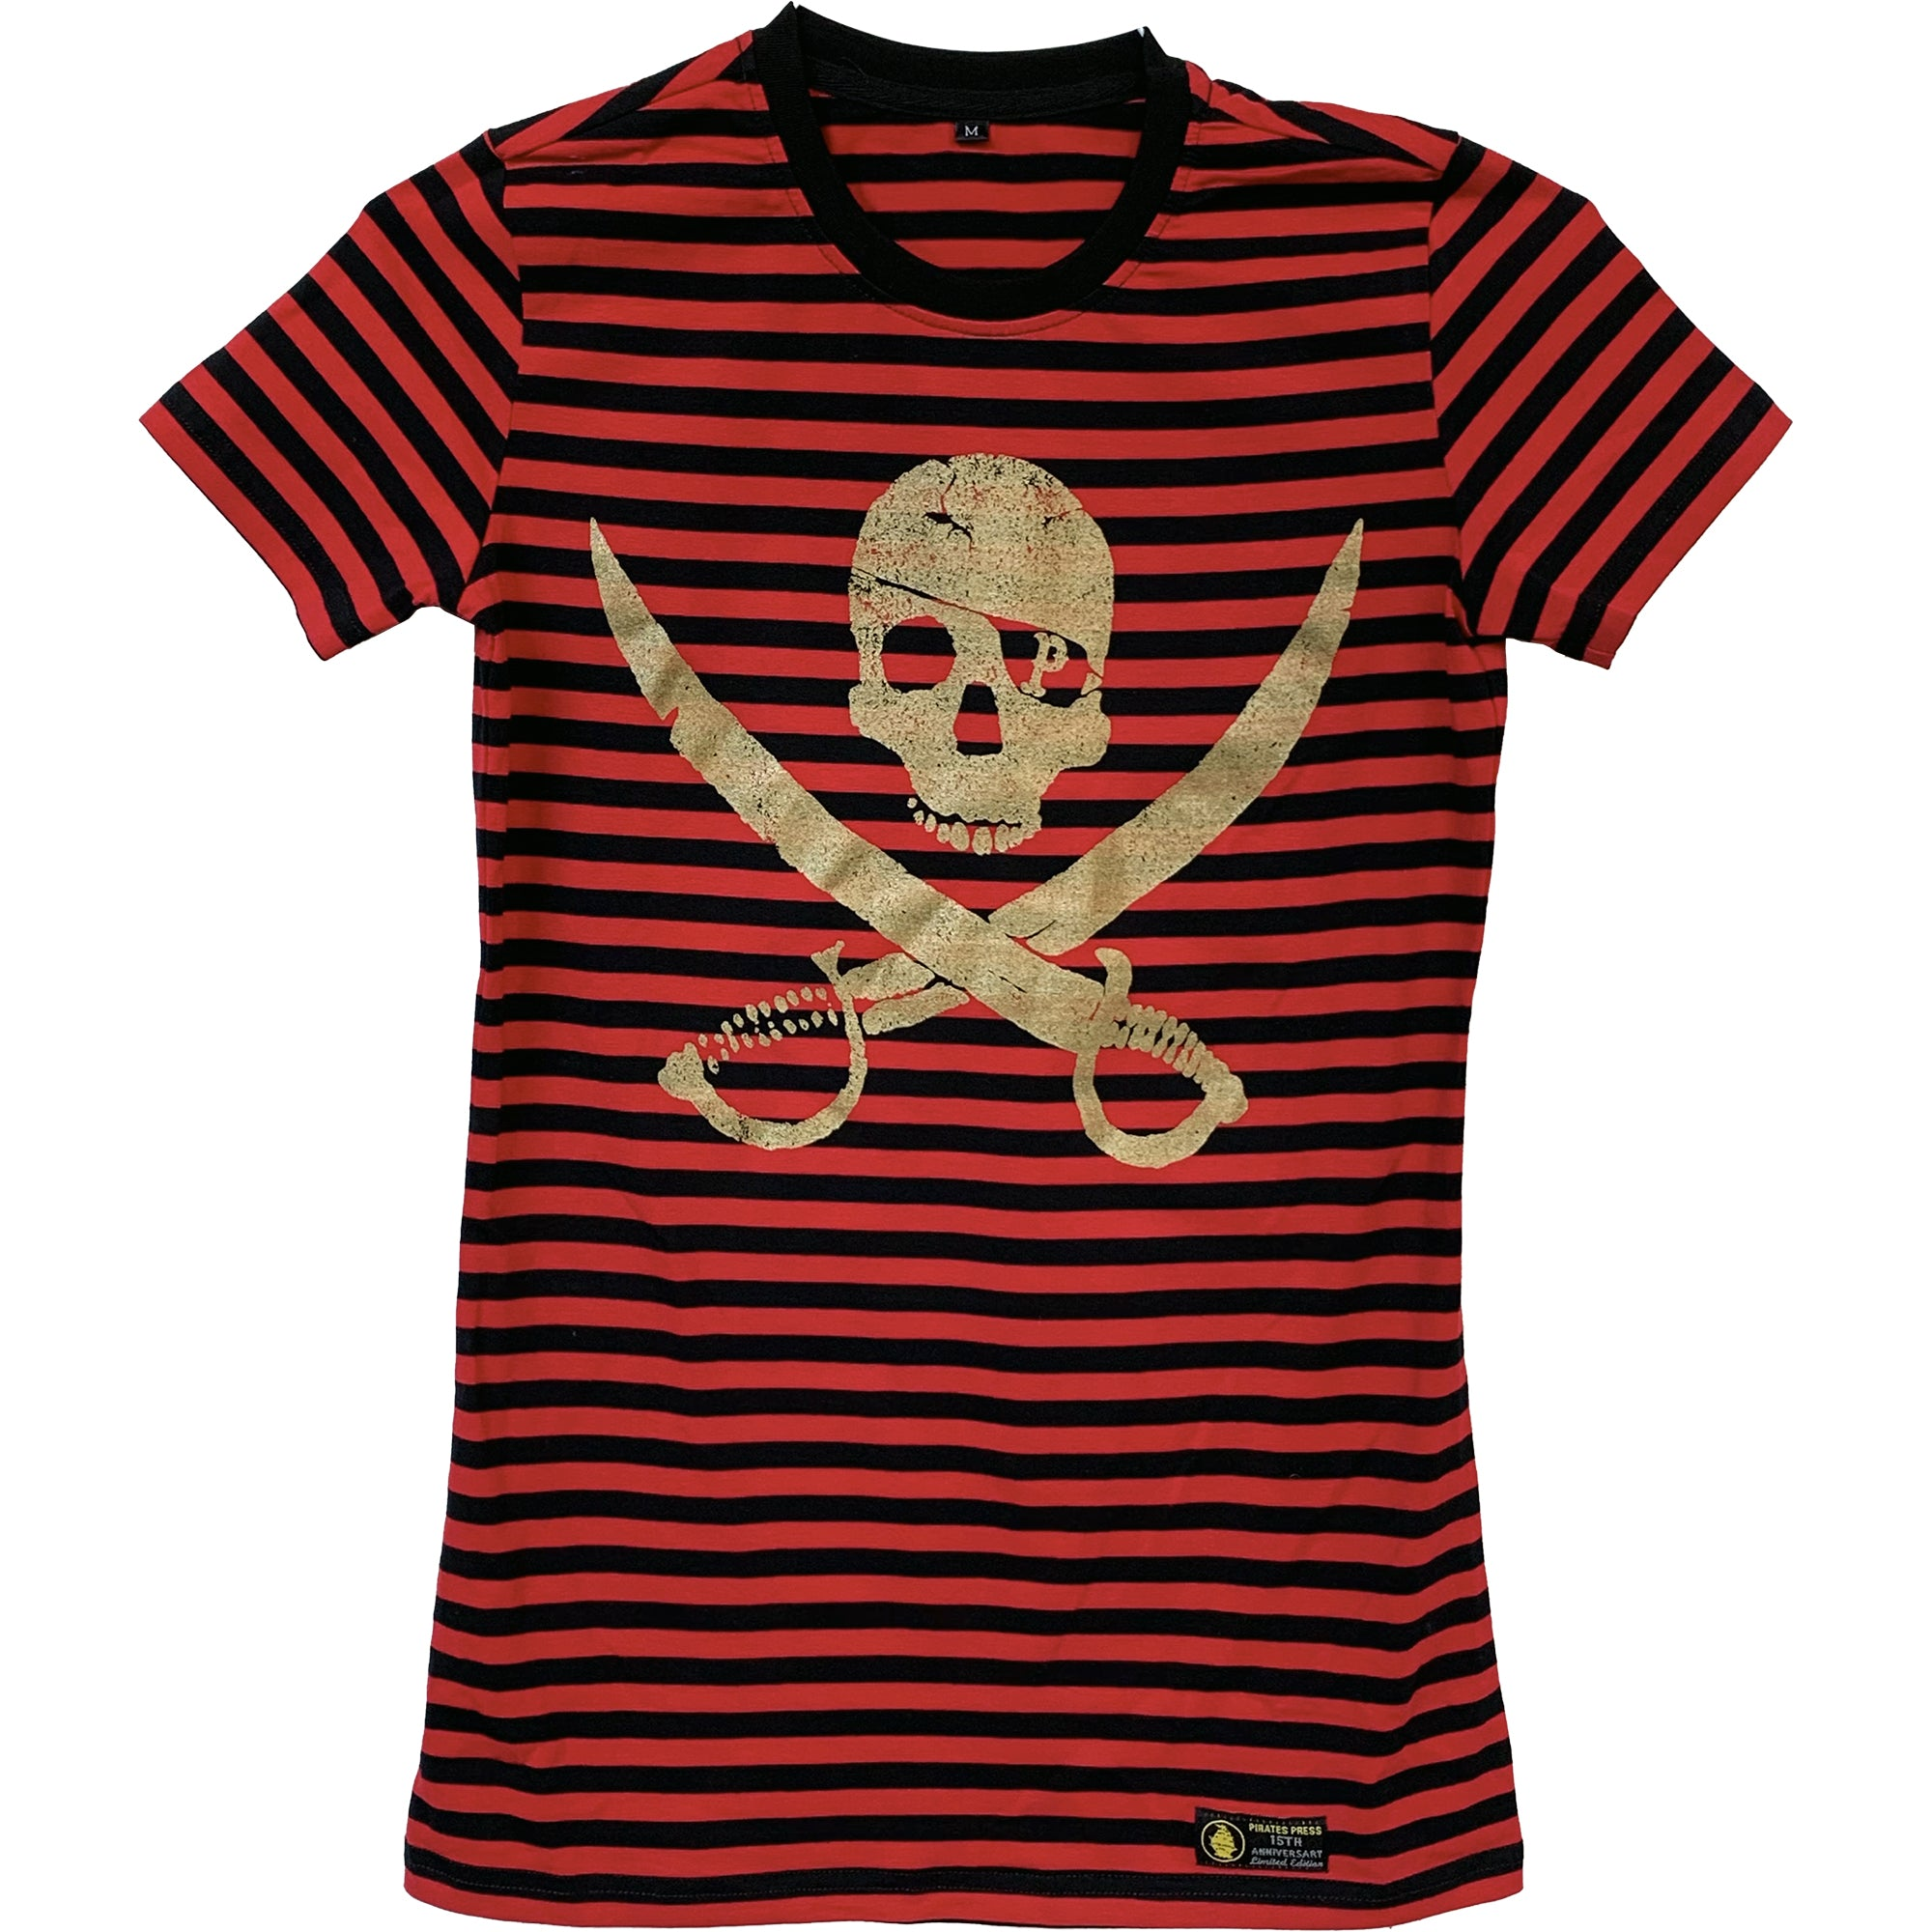 Pirates Press Records - Pirate Logo - Gold on Red & Black Striped  - 15 Year Tag - T-Shirt - Fitted